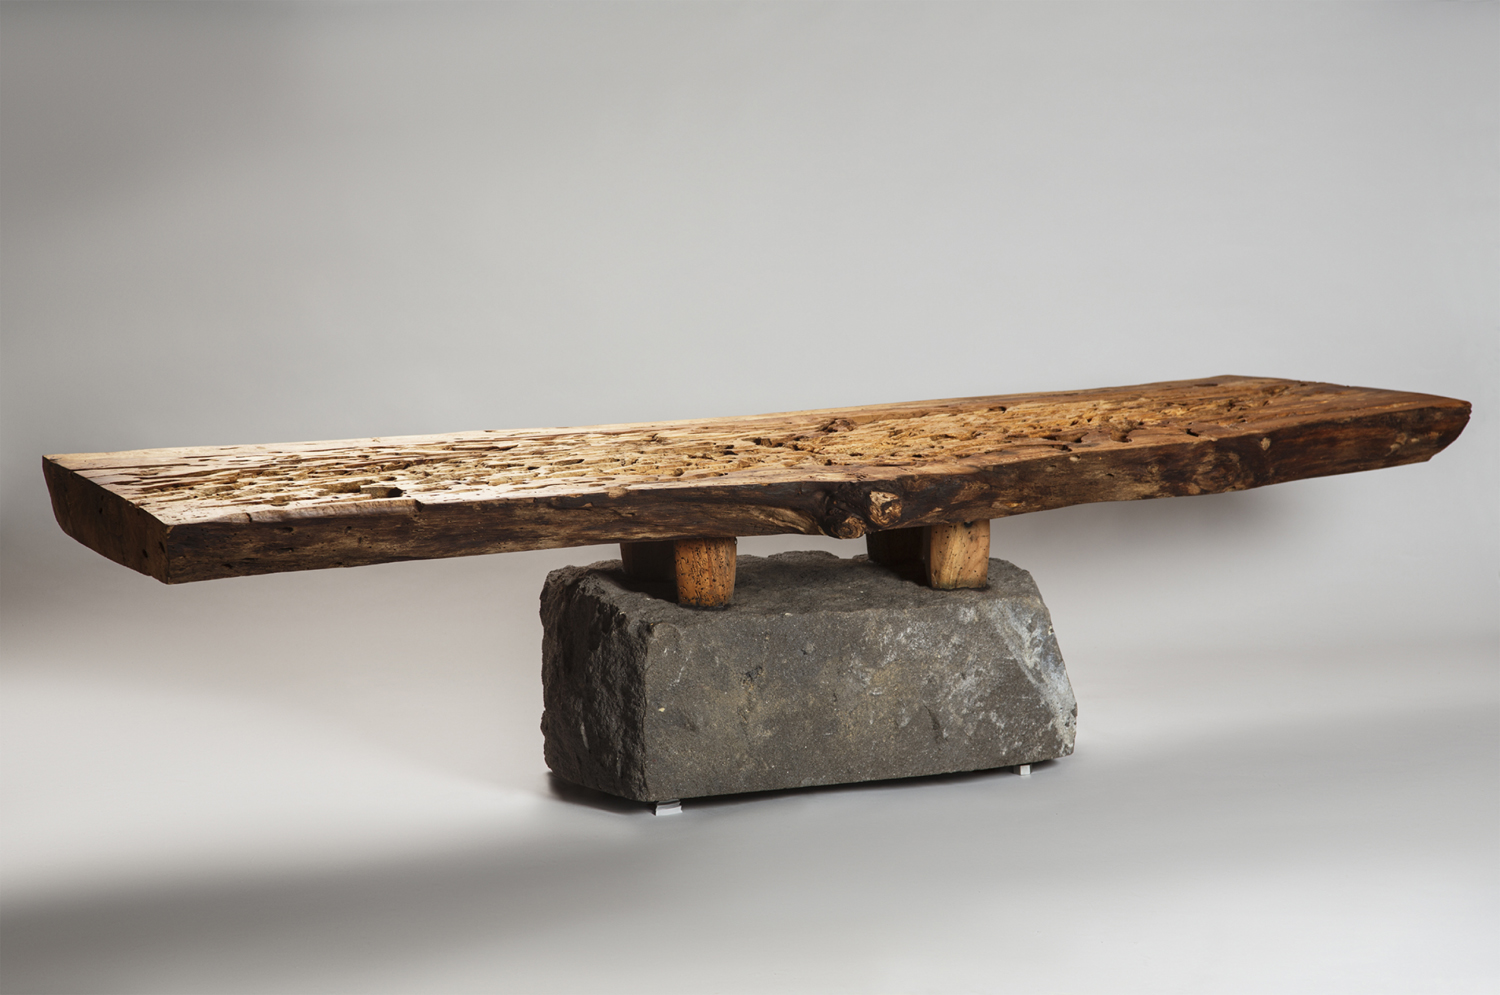 bench-salvaged-mexican-alder-wood-basalt-recinto-with-feet-shi-ho-julio-martinez-marion-friedmann-gallery-23-lr.jpg